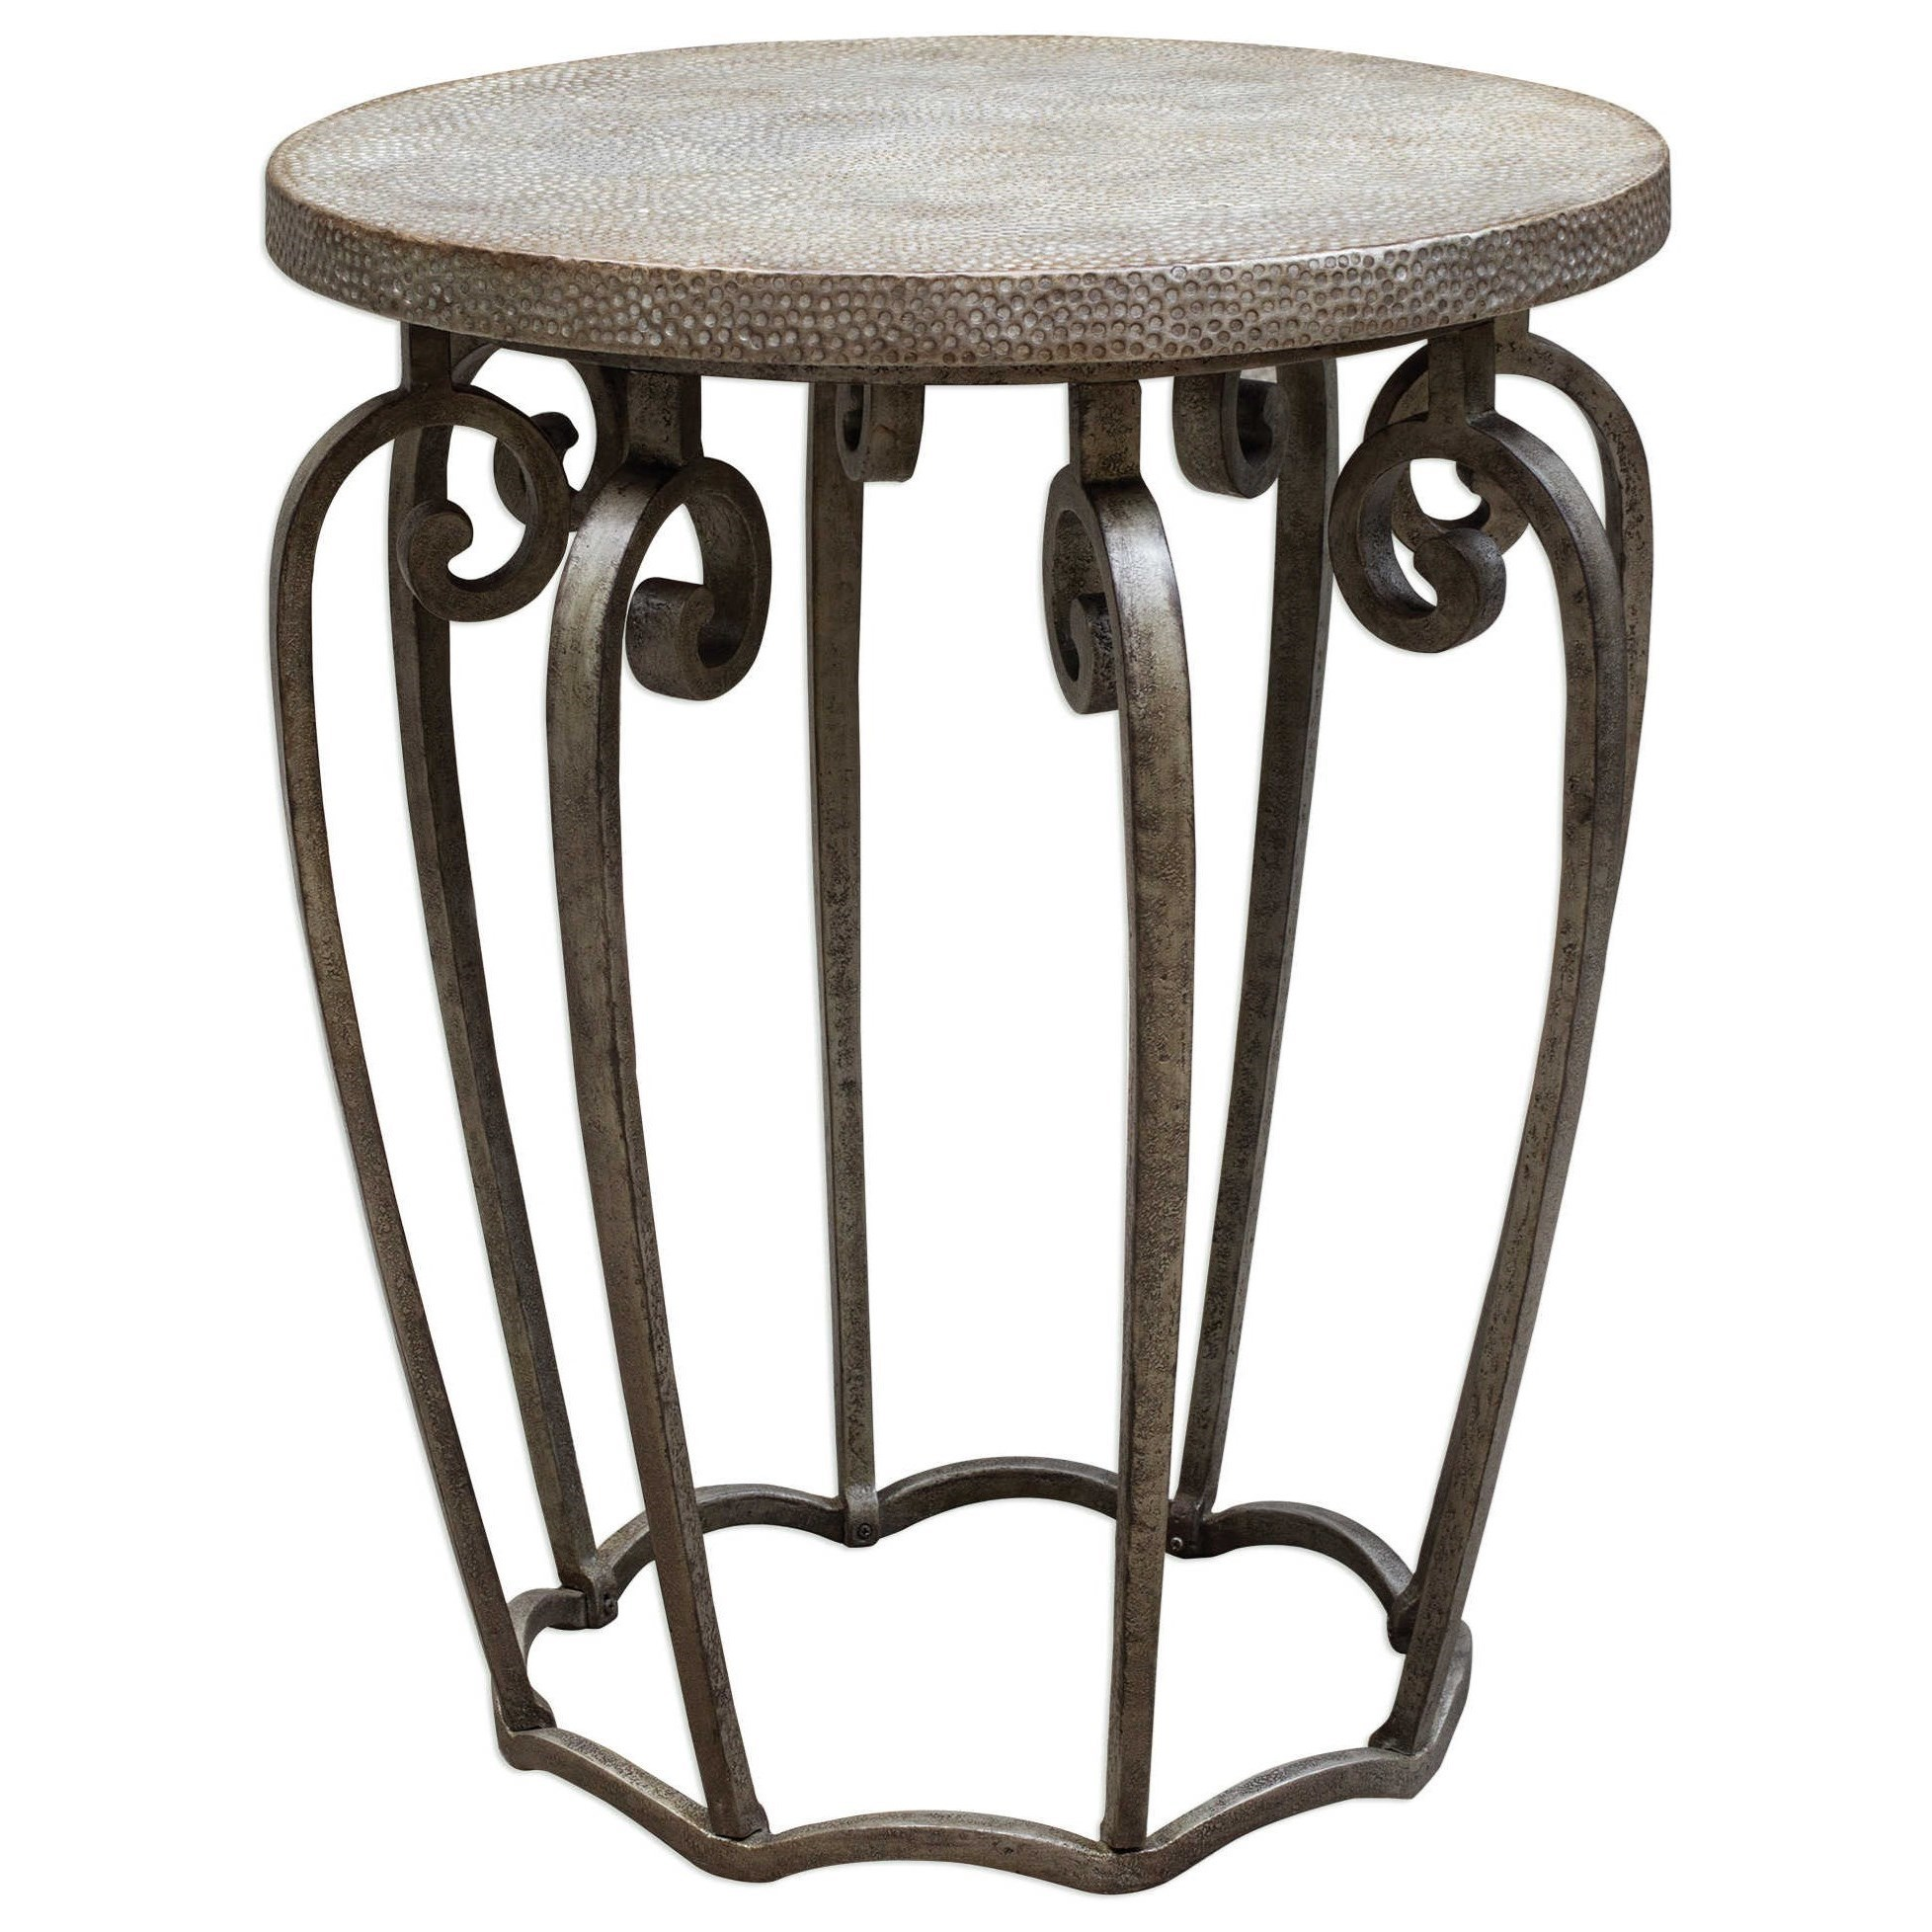 Medium image of uttermost accent furniture anina hammered iron accent table